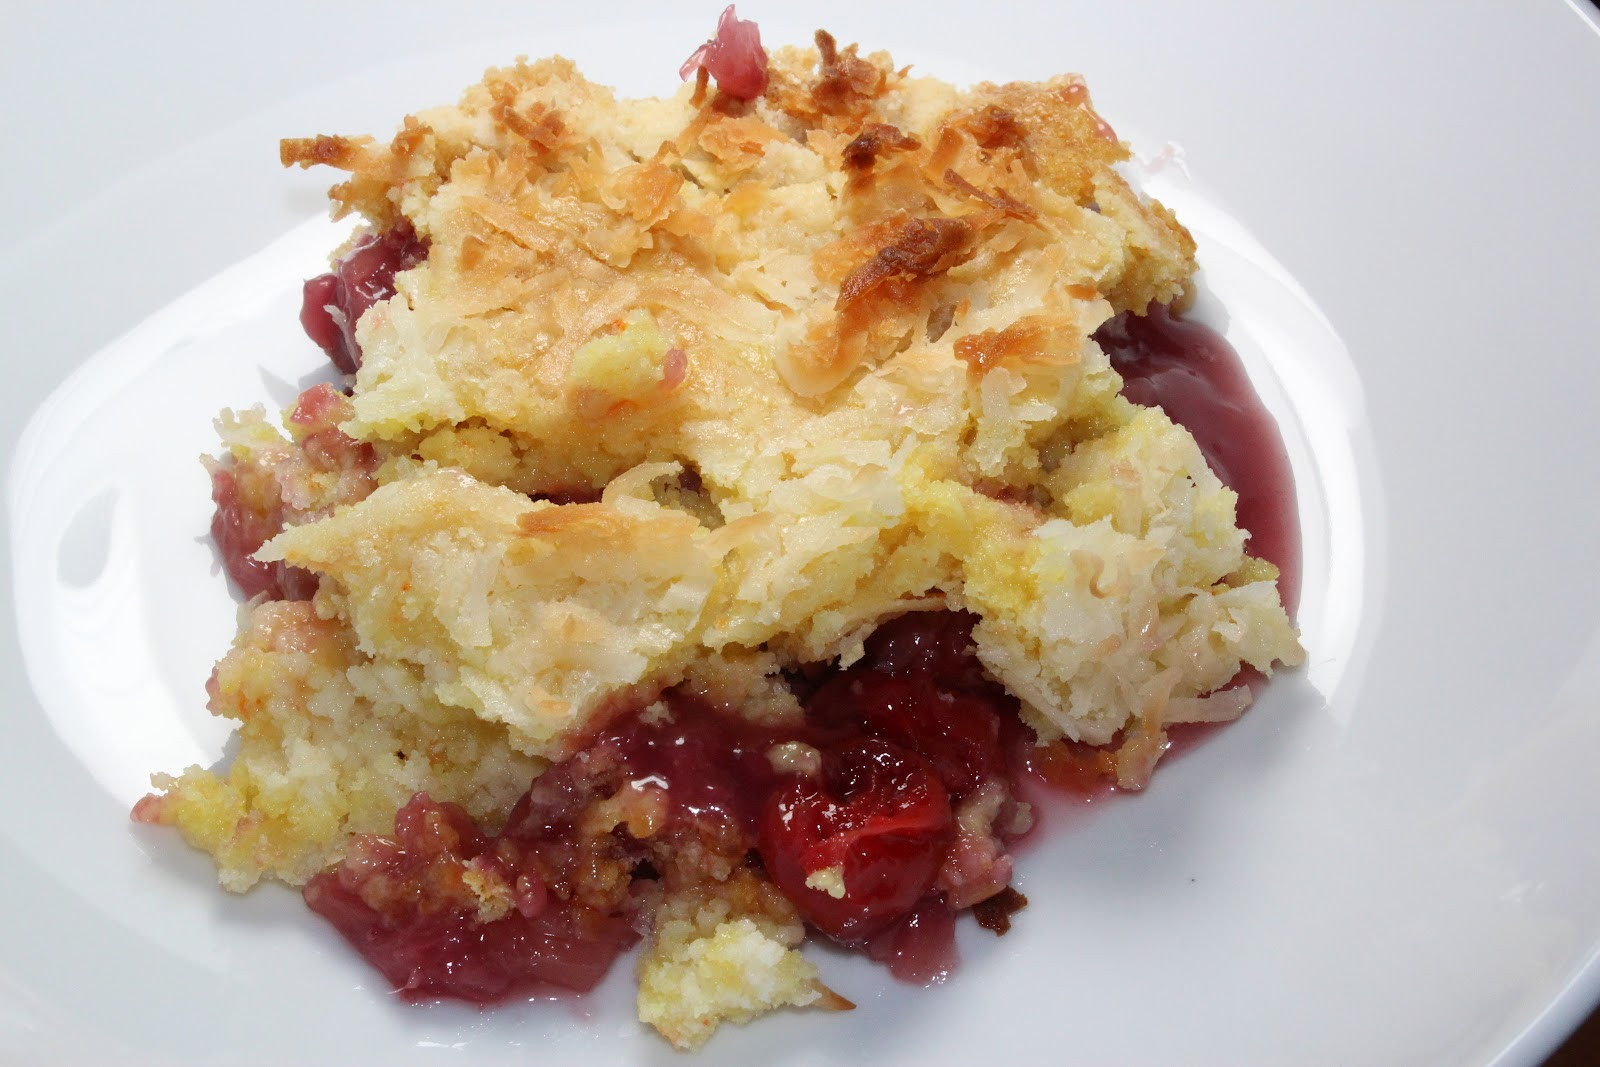 Pineapple Dump Cake  Michelle s Tasty Creations Cherry Pineapple Dump Cake